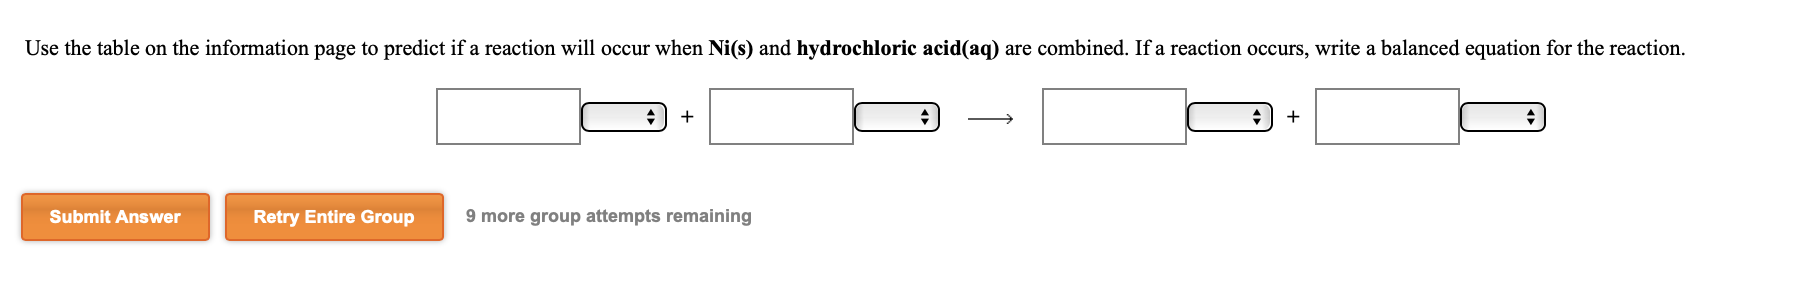 Use the table on the information page to predict if a reaction will occur when Ni(s) and hydrochloric acid(aq) are combined. If a reaction occurs, write a balanced equation for the reaction. Submit Answer Retry Entire Group 9 more group attempts remaining